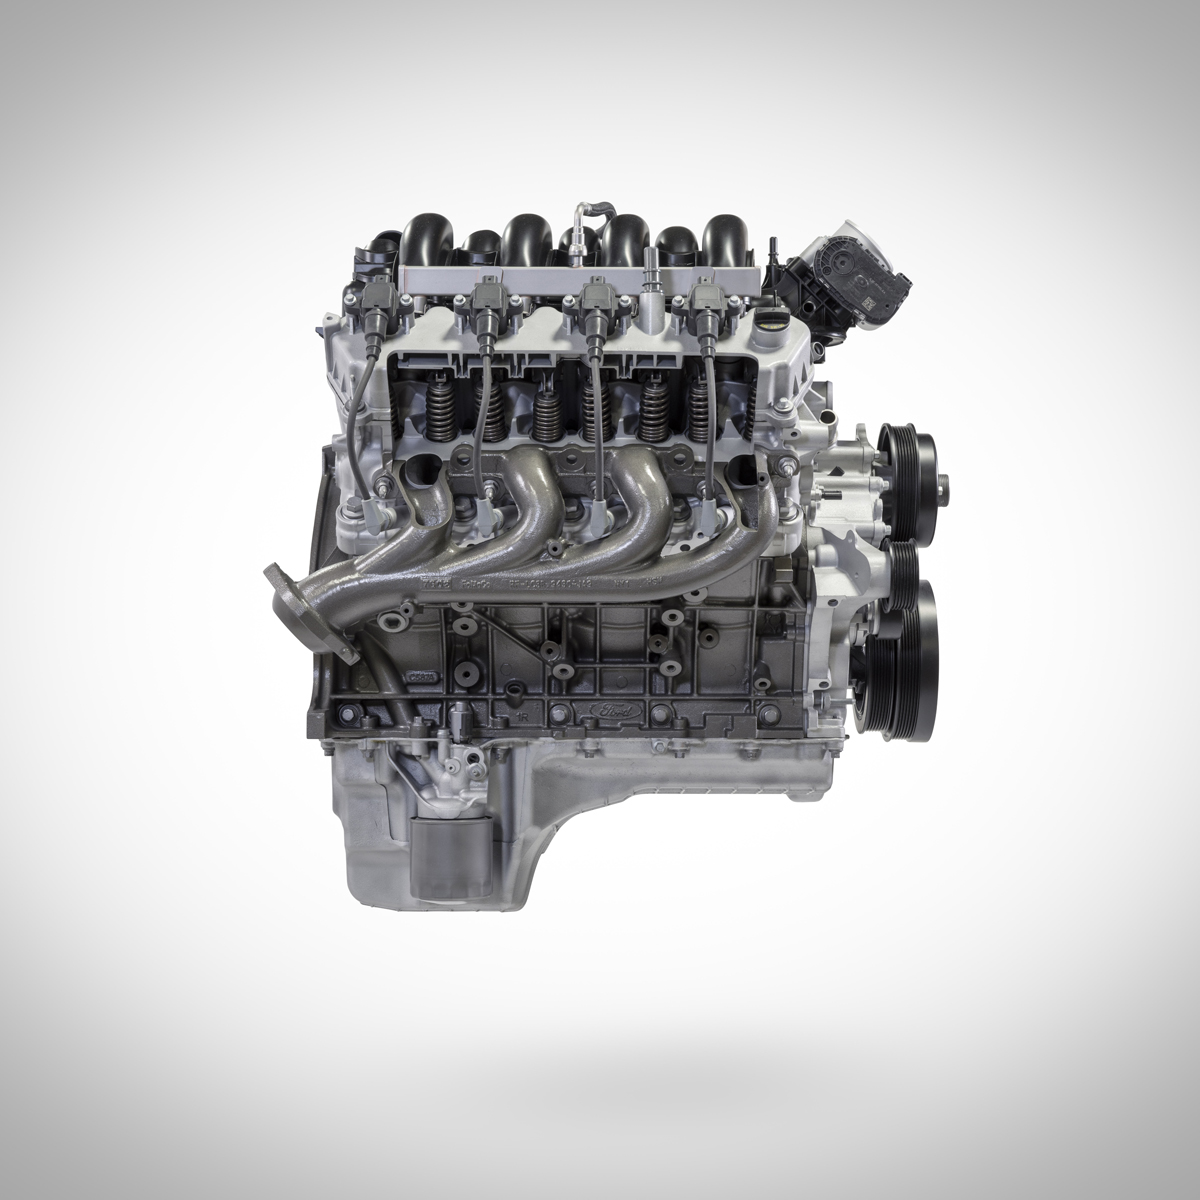 7.3L V8 Ford crate engine from Ford Performance cut away side